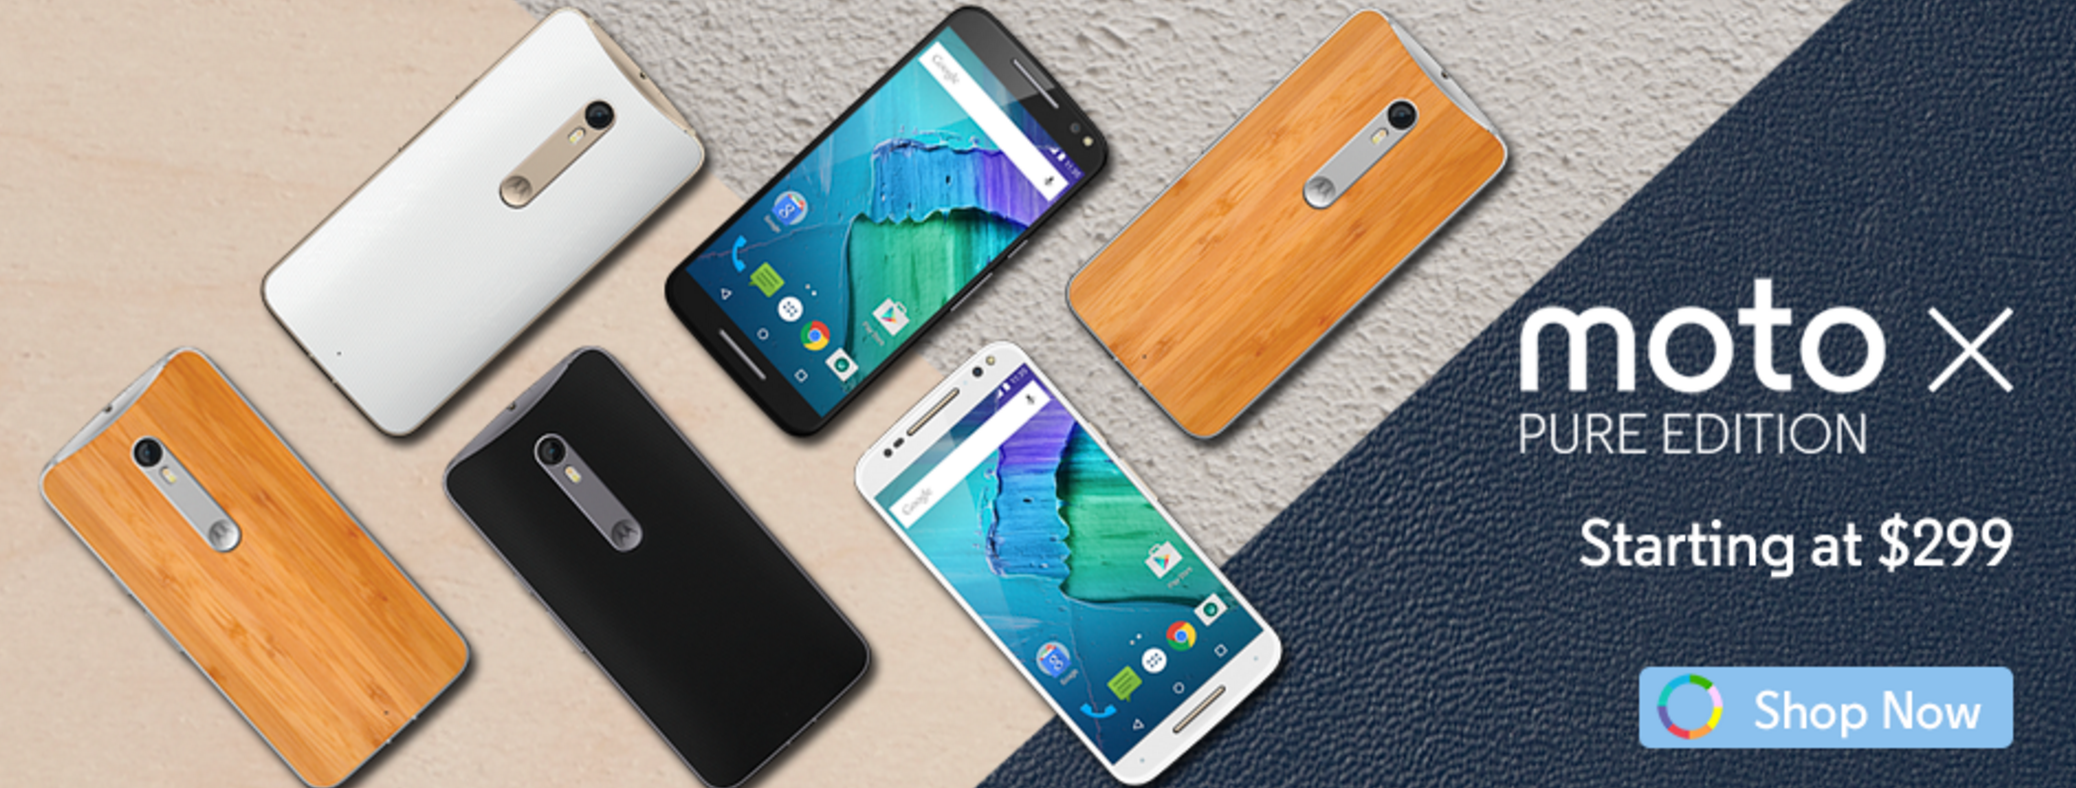 Moto_X_Pure_Amazon_banner